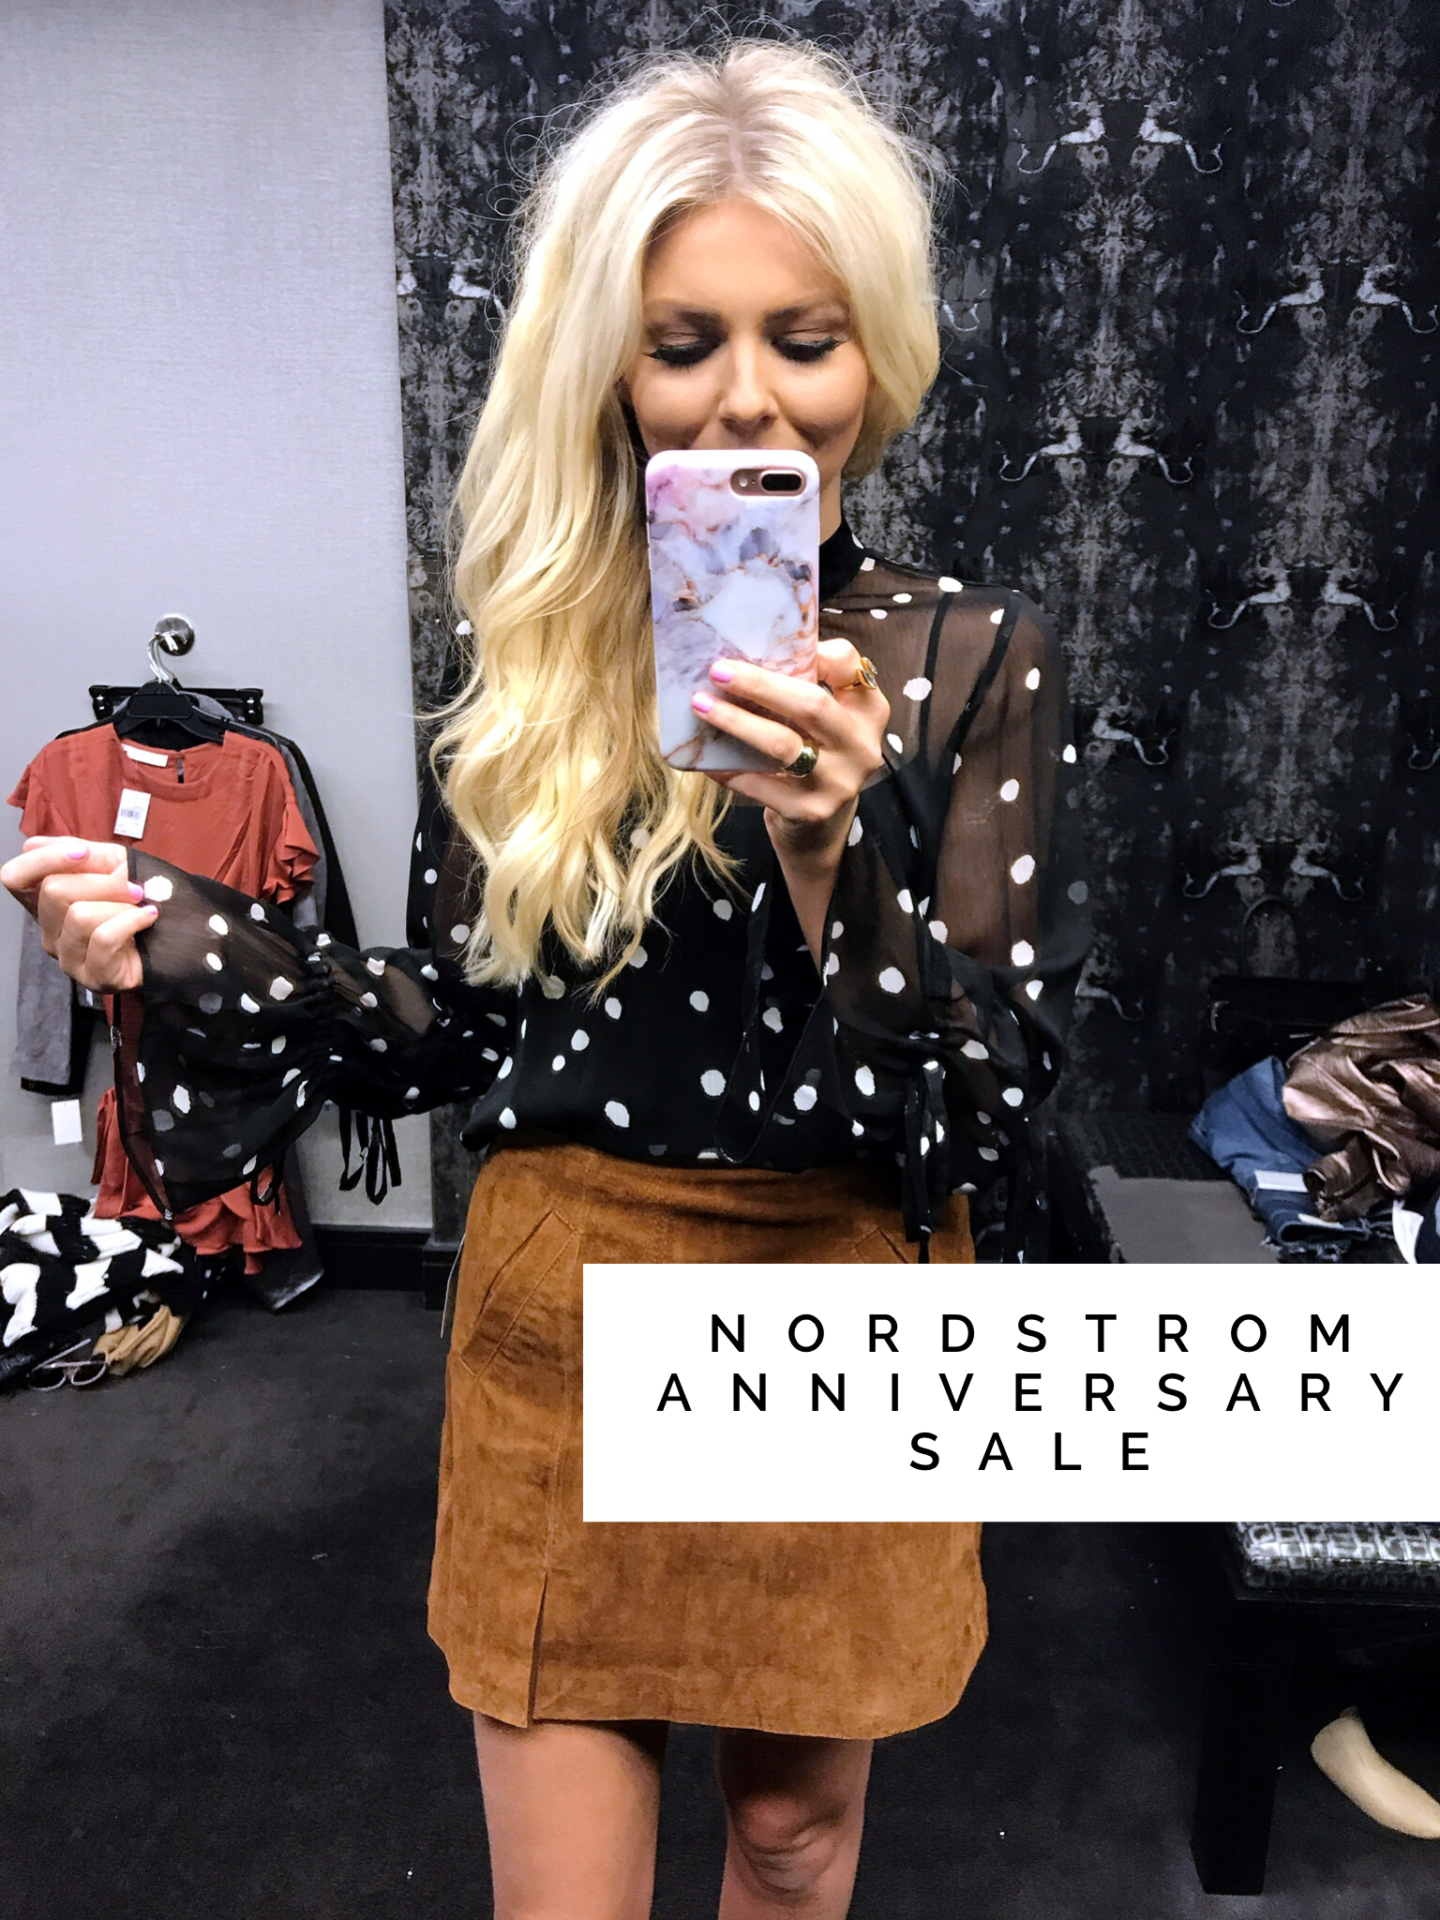 Nordstrom Anniversary Sale – Important Info